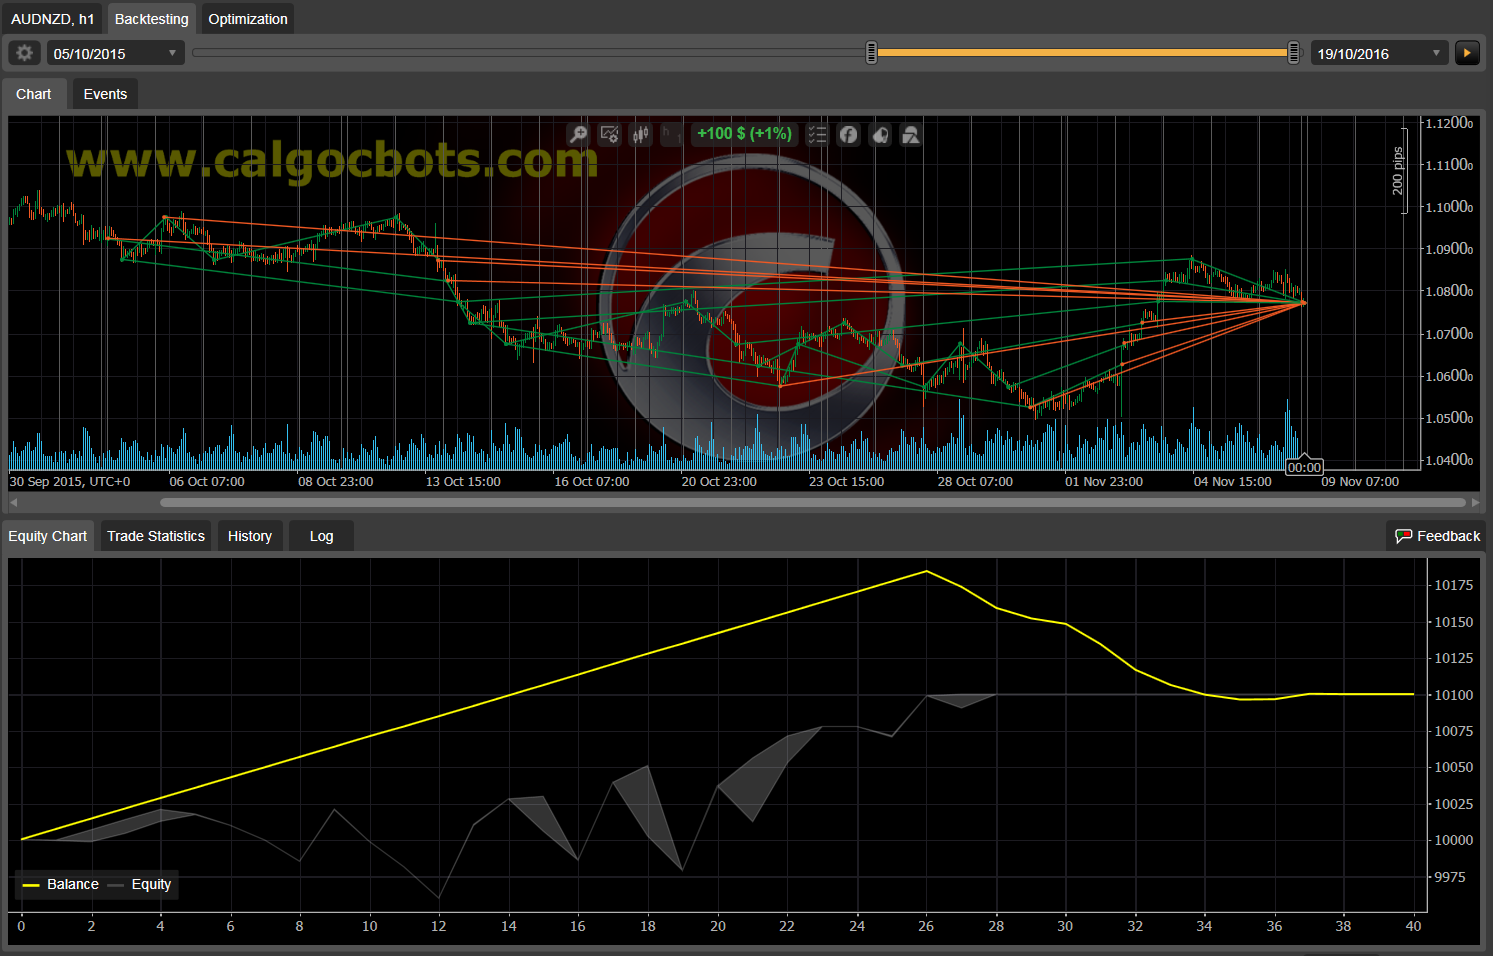 Dual Grid Hedge AUD NZD 1h cAlgo cBots cTrader 1k 100 50 100 - 03